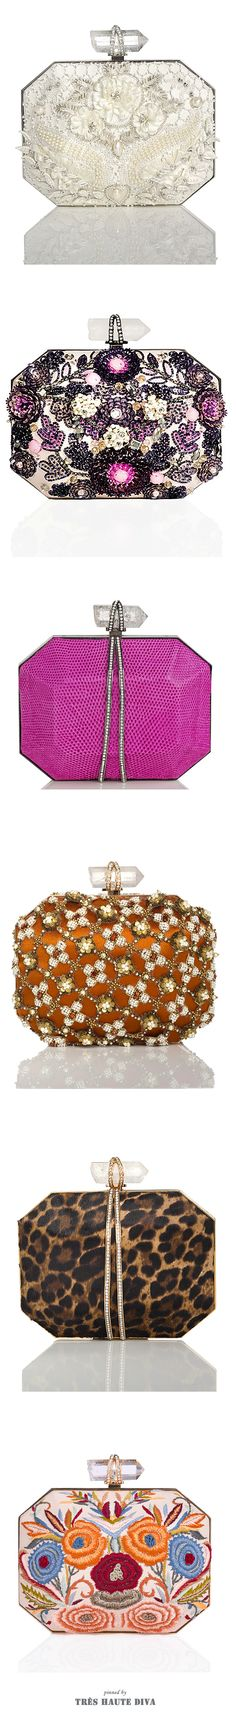 Marchesa ♔ Evening Clutches 2014-15 ♔